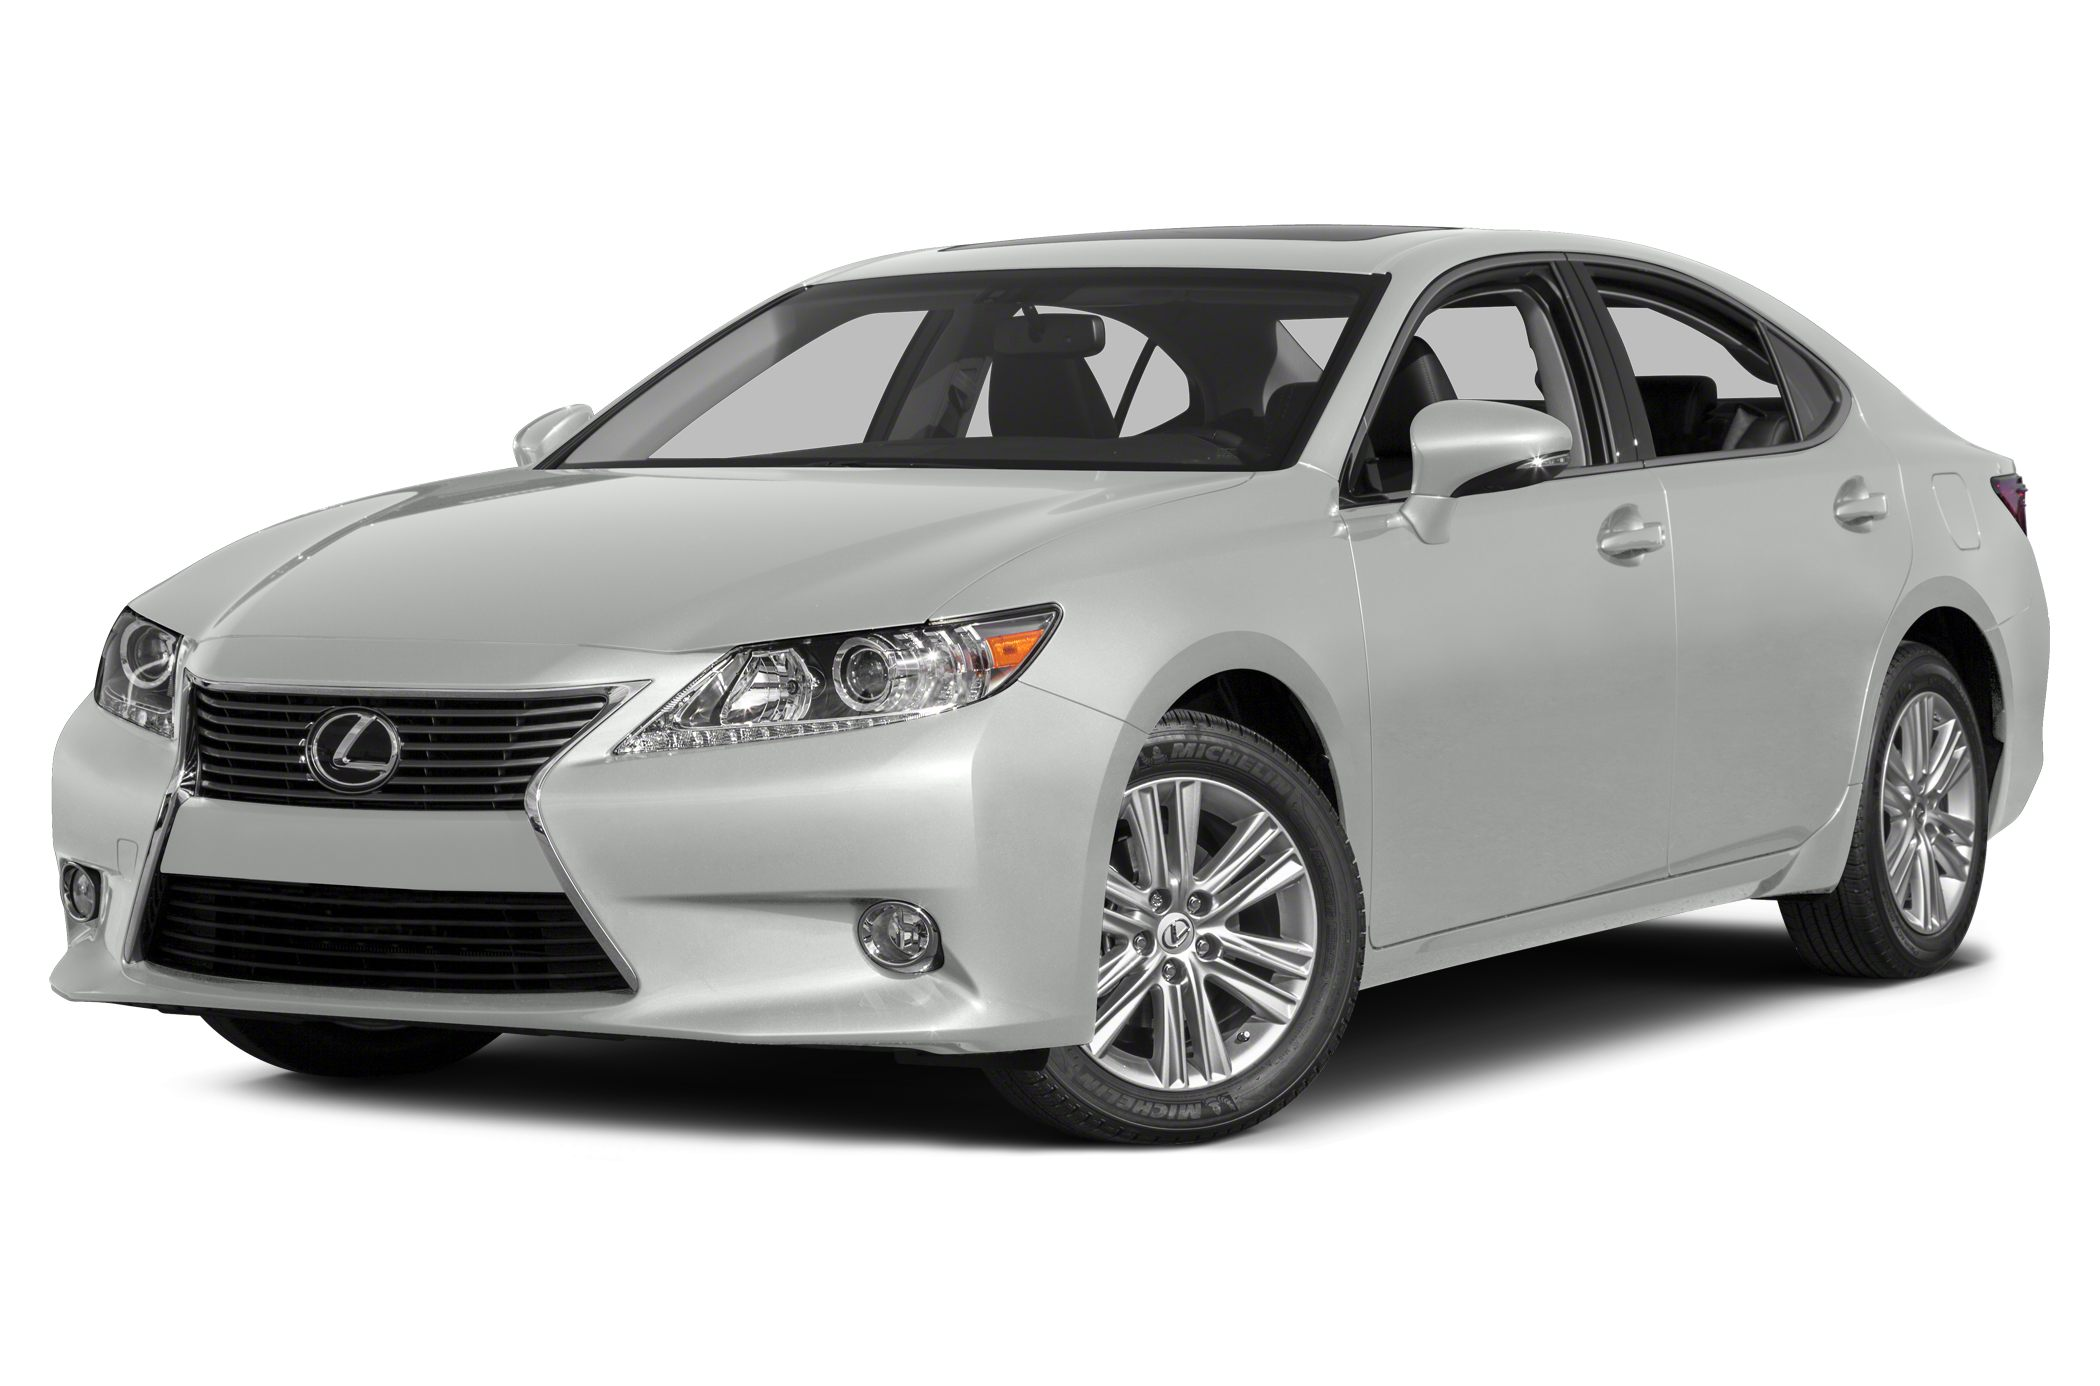 2015 Lexus ES 350 Crafted Line Sedan for sale in Atlanta for $45,589 with 6 miles.